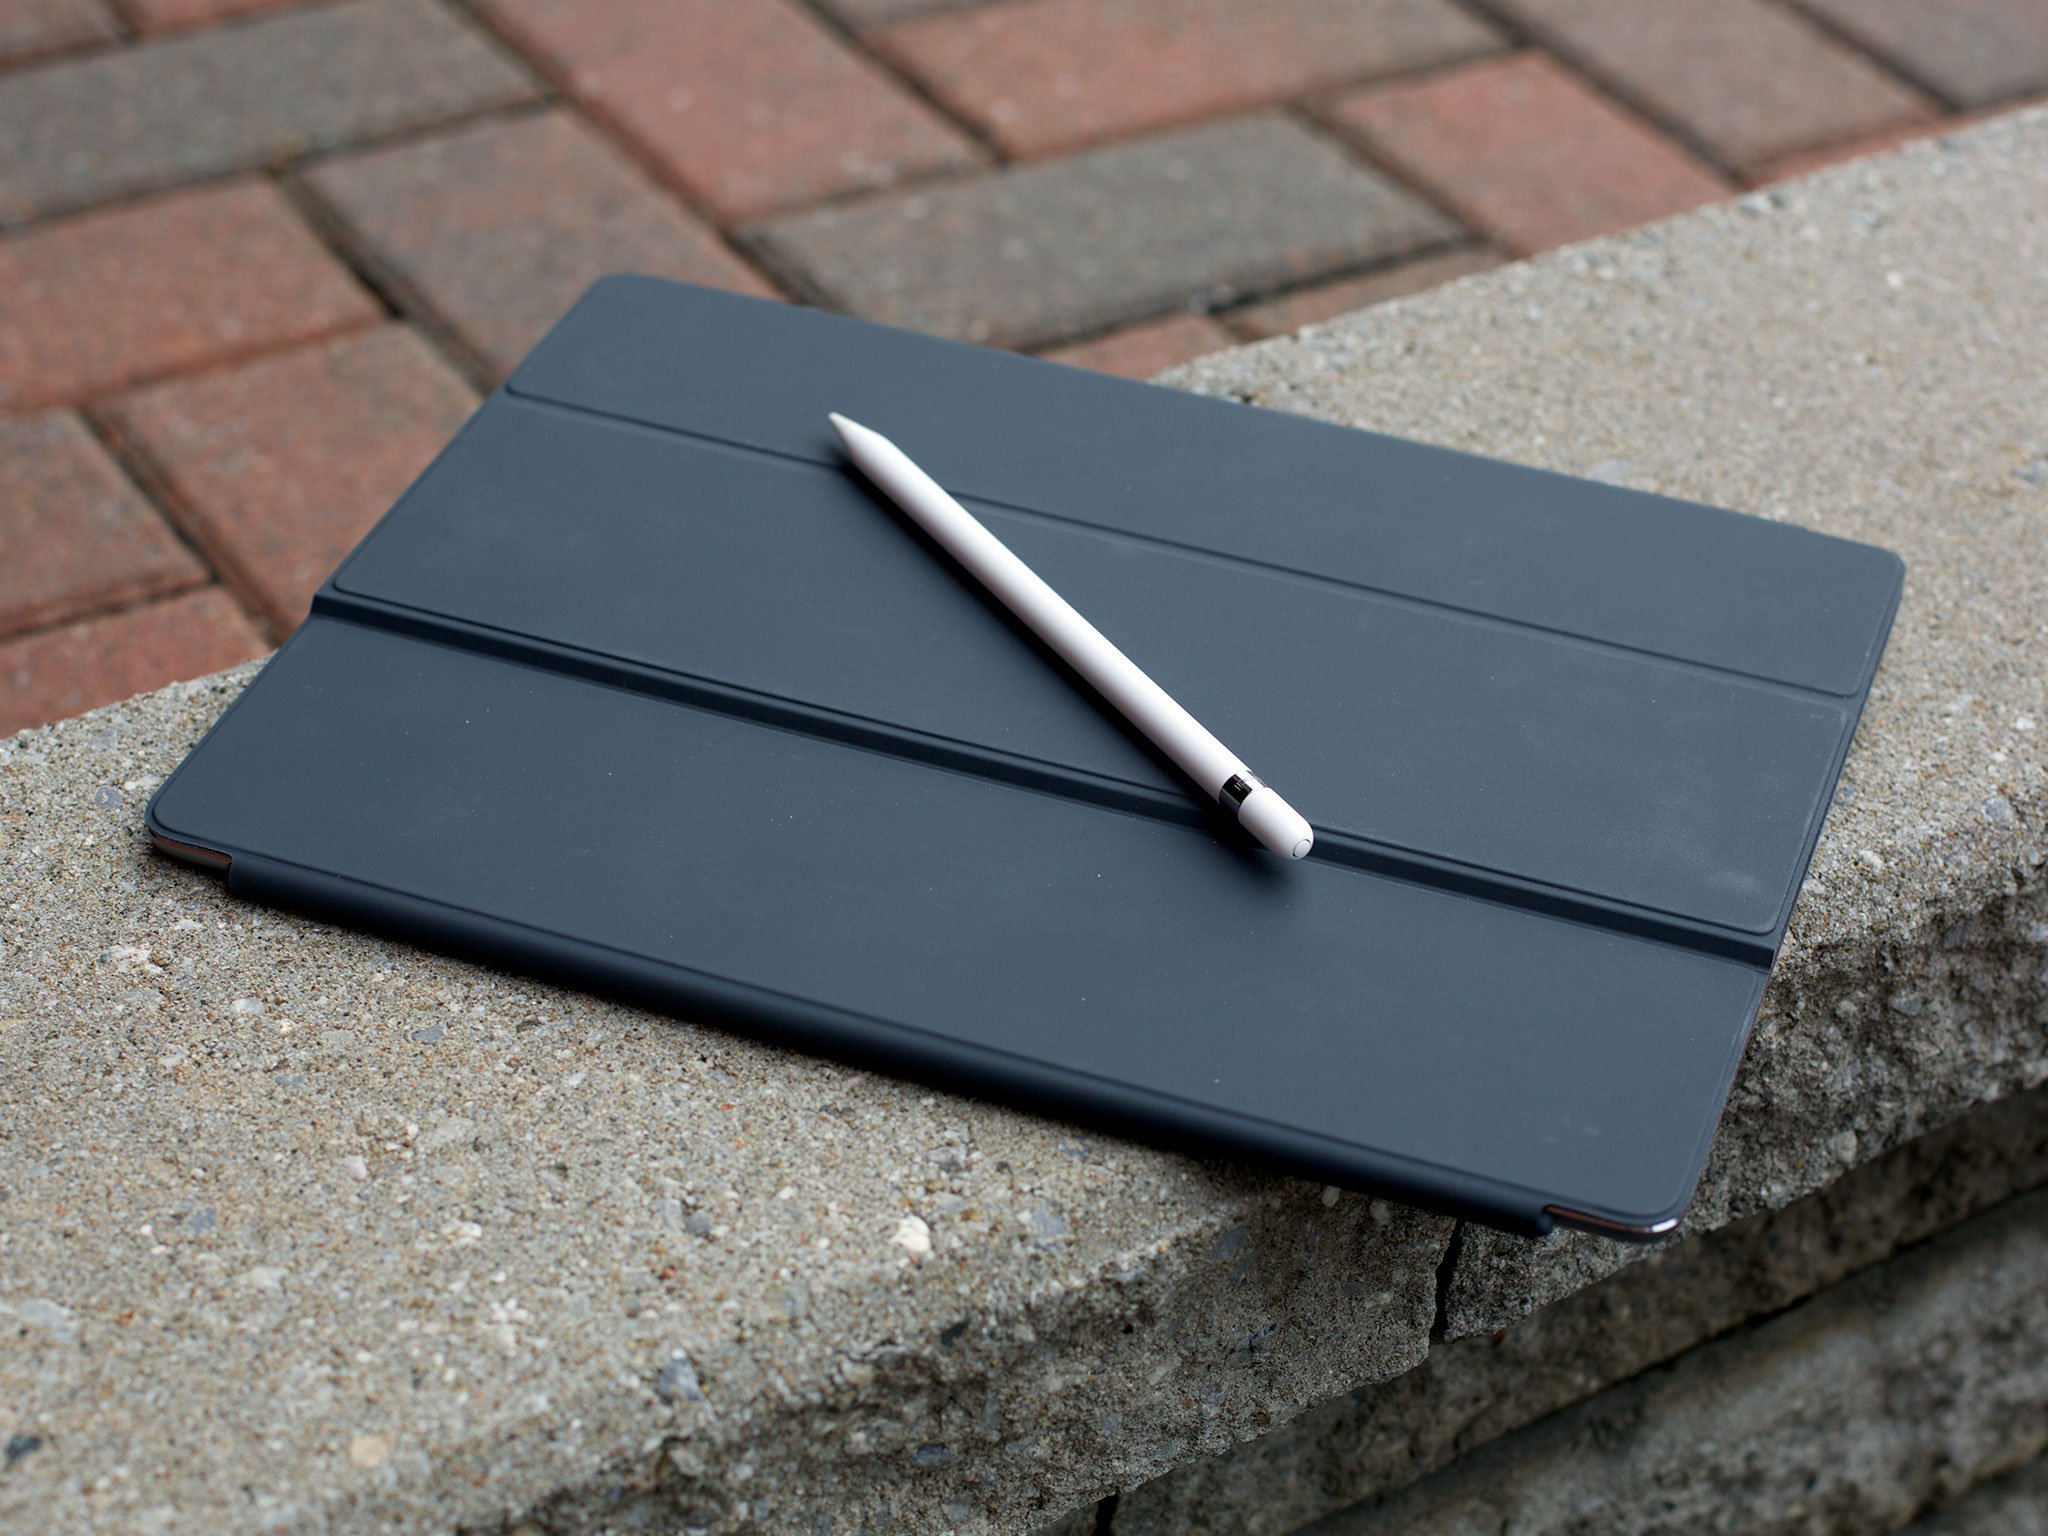 Will The First Generation Smart Cover Or Smart Keyboard For